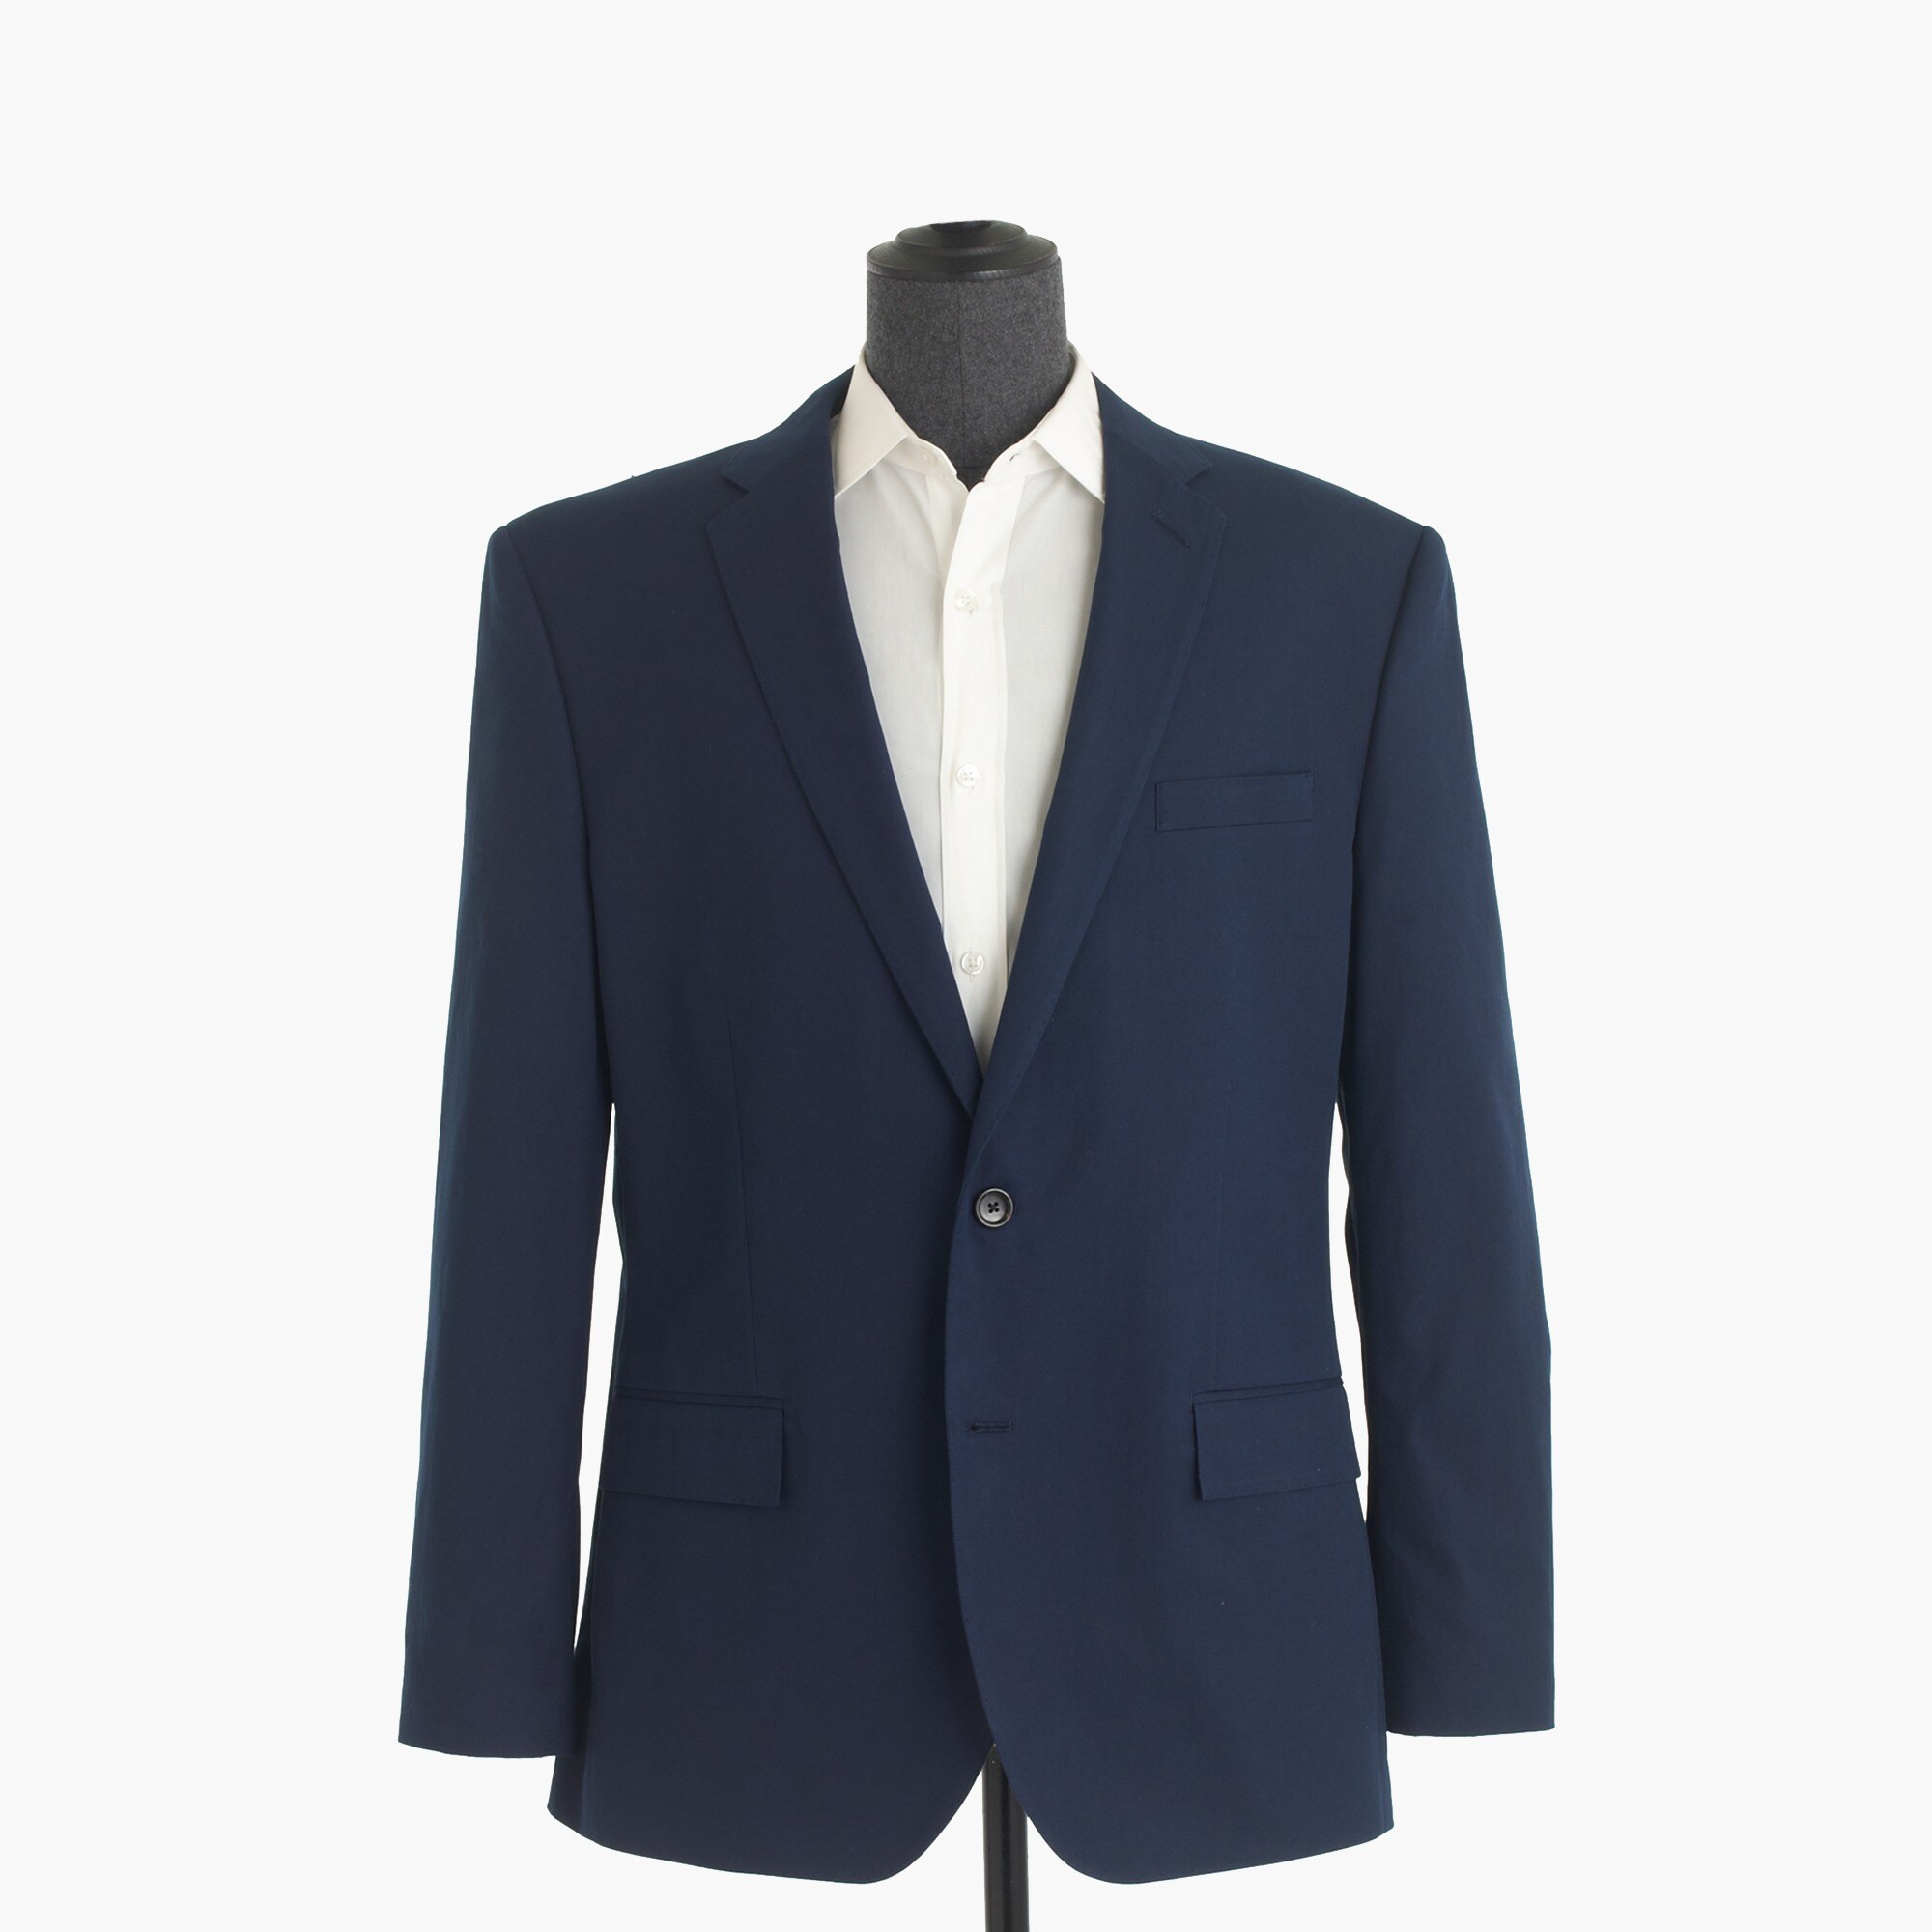 Crosby suit jacket in Italian cotton piqué